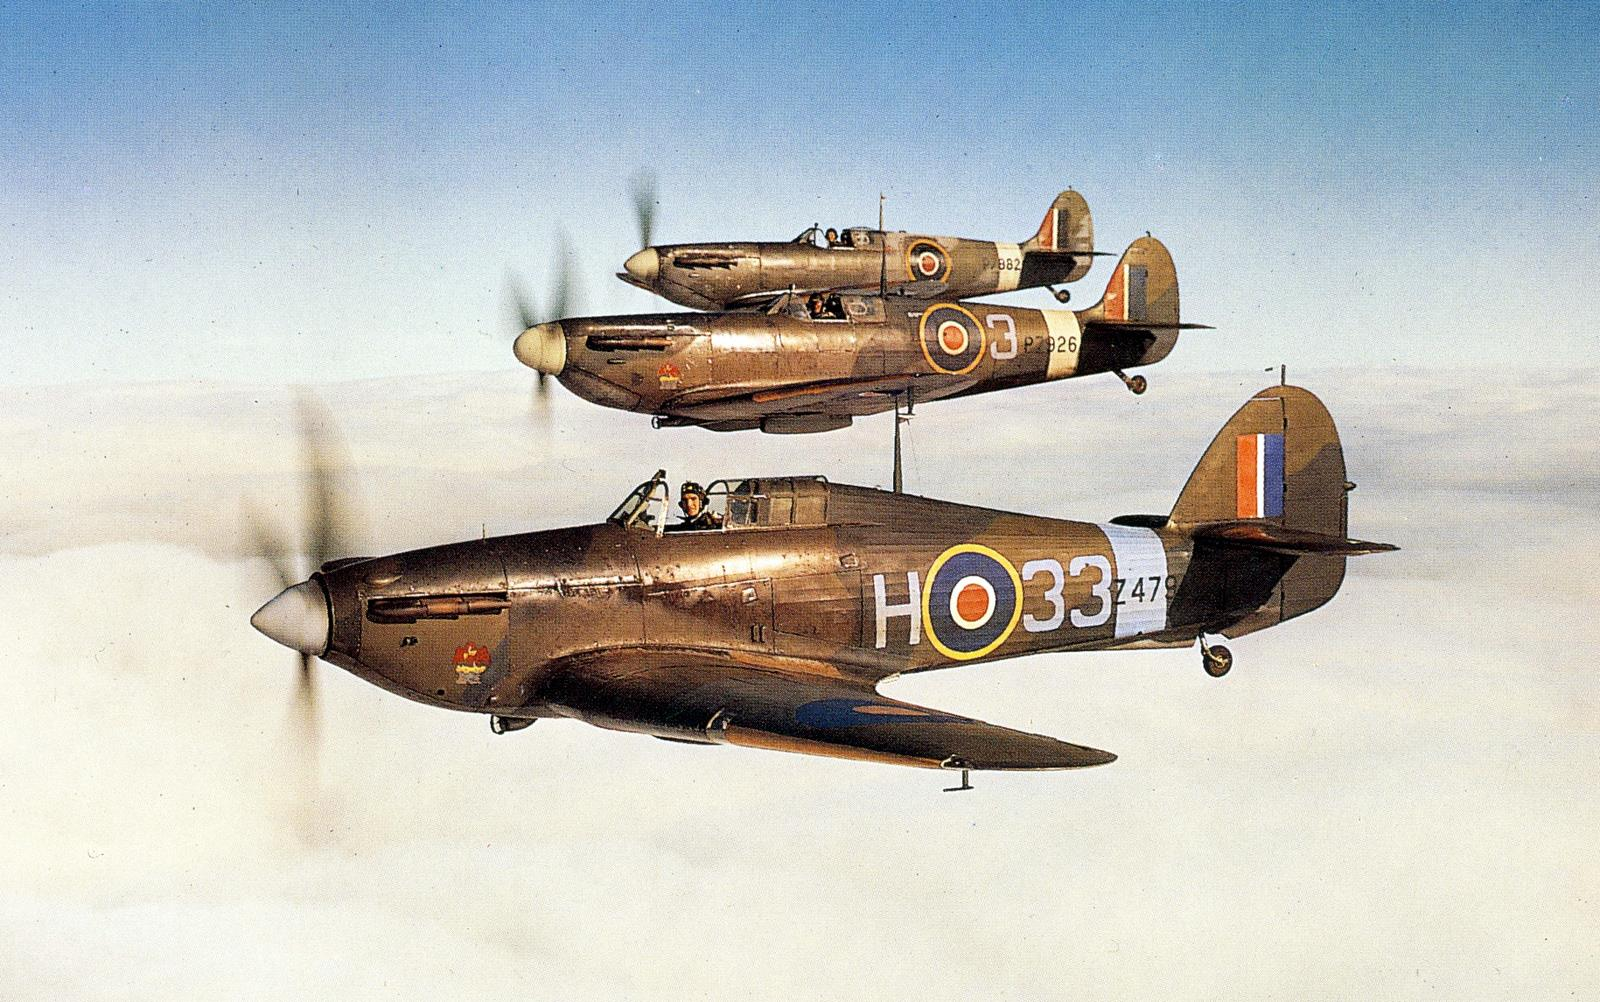 Empire Central Flying School Hurricane H33 Z4794 with Spitfires PZ926 and PZ882 01